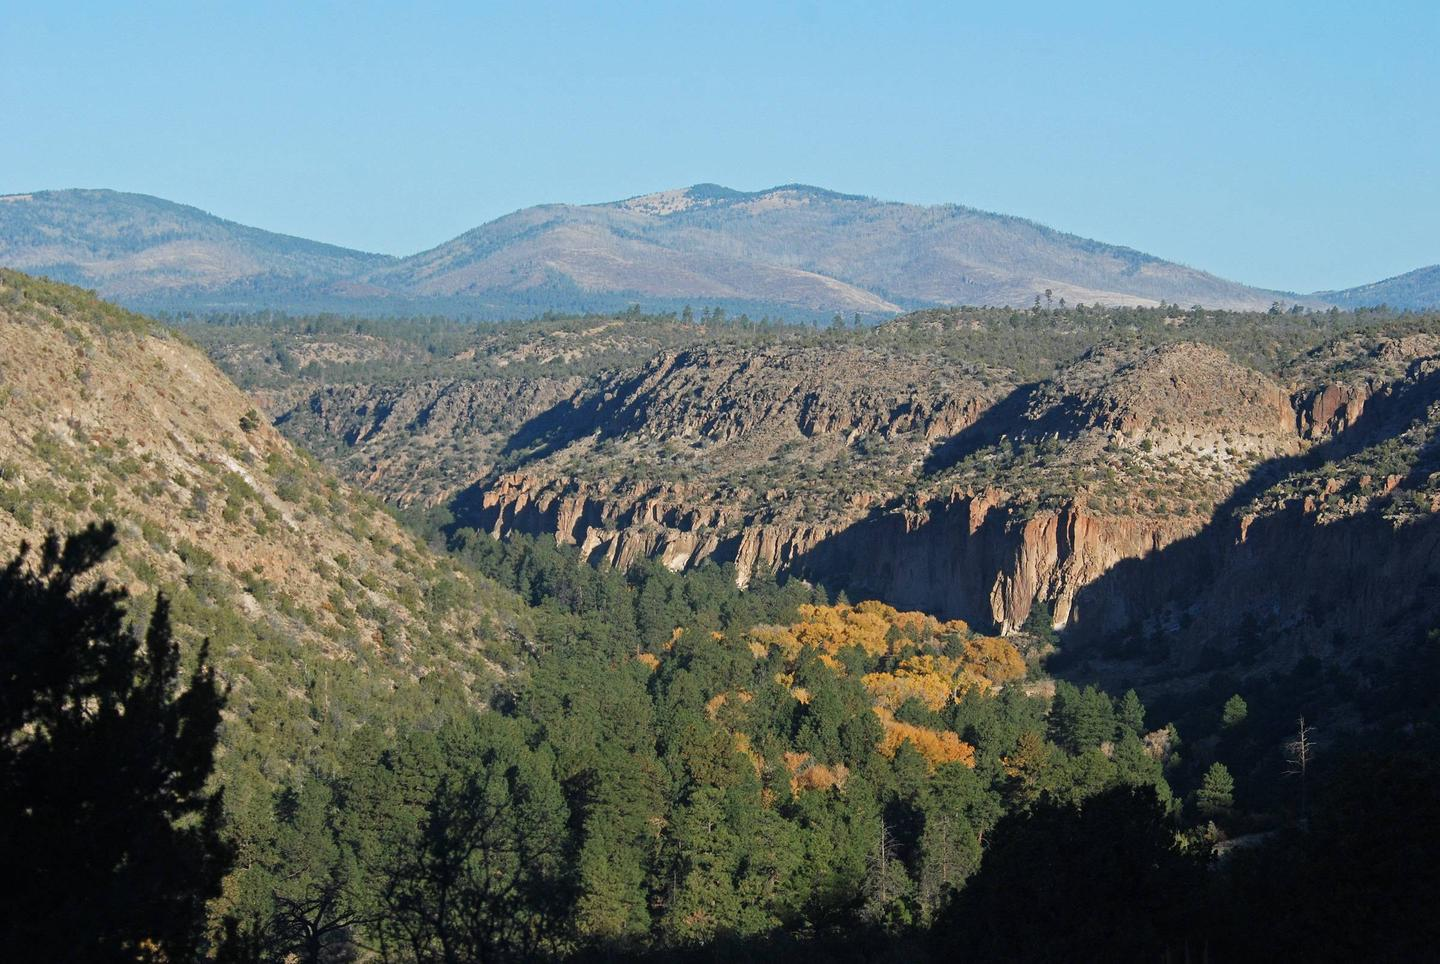 A canyon with trees changing color and mountains in the distance.The group campsites at Juniper Family Campground are open year-round. The landscape of Bandelier changes with seasons and provides reason to visit anytime of year.